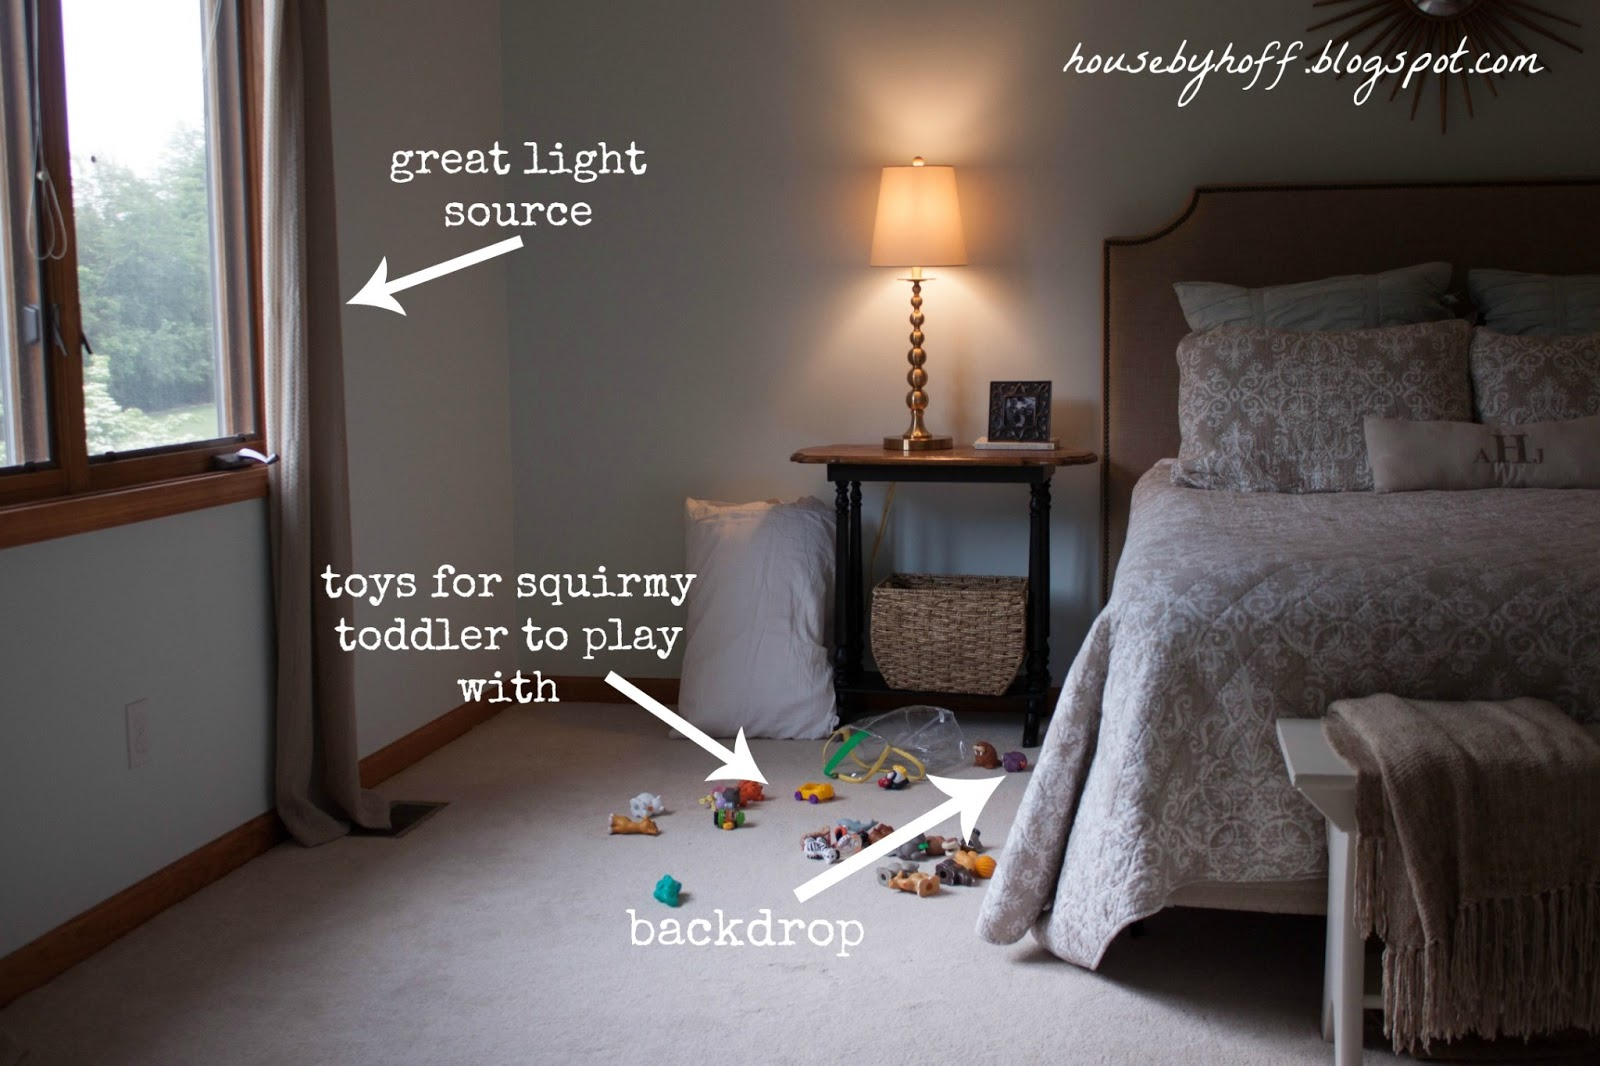 & Faking a Photography Studio in Your Home - House by Hoff